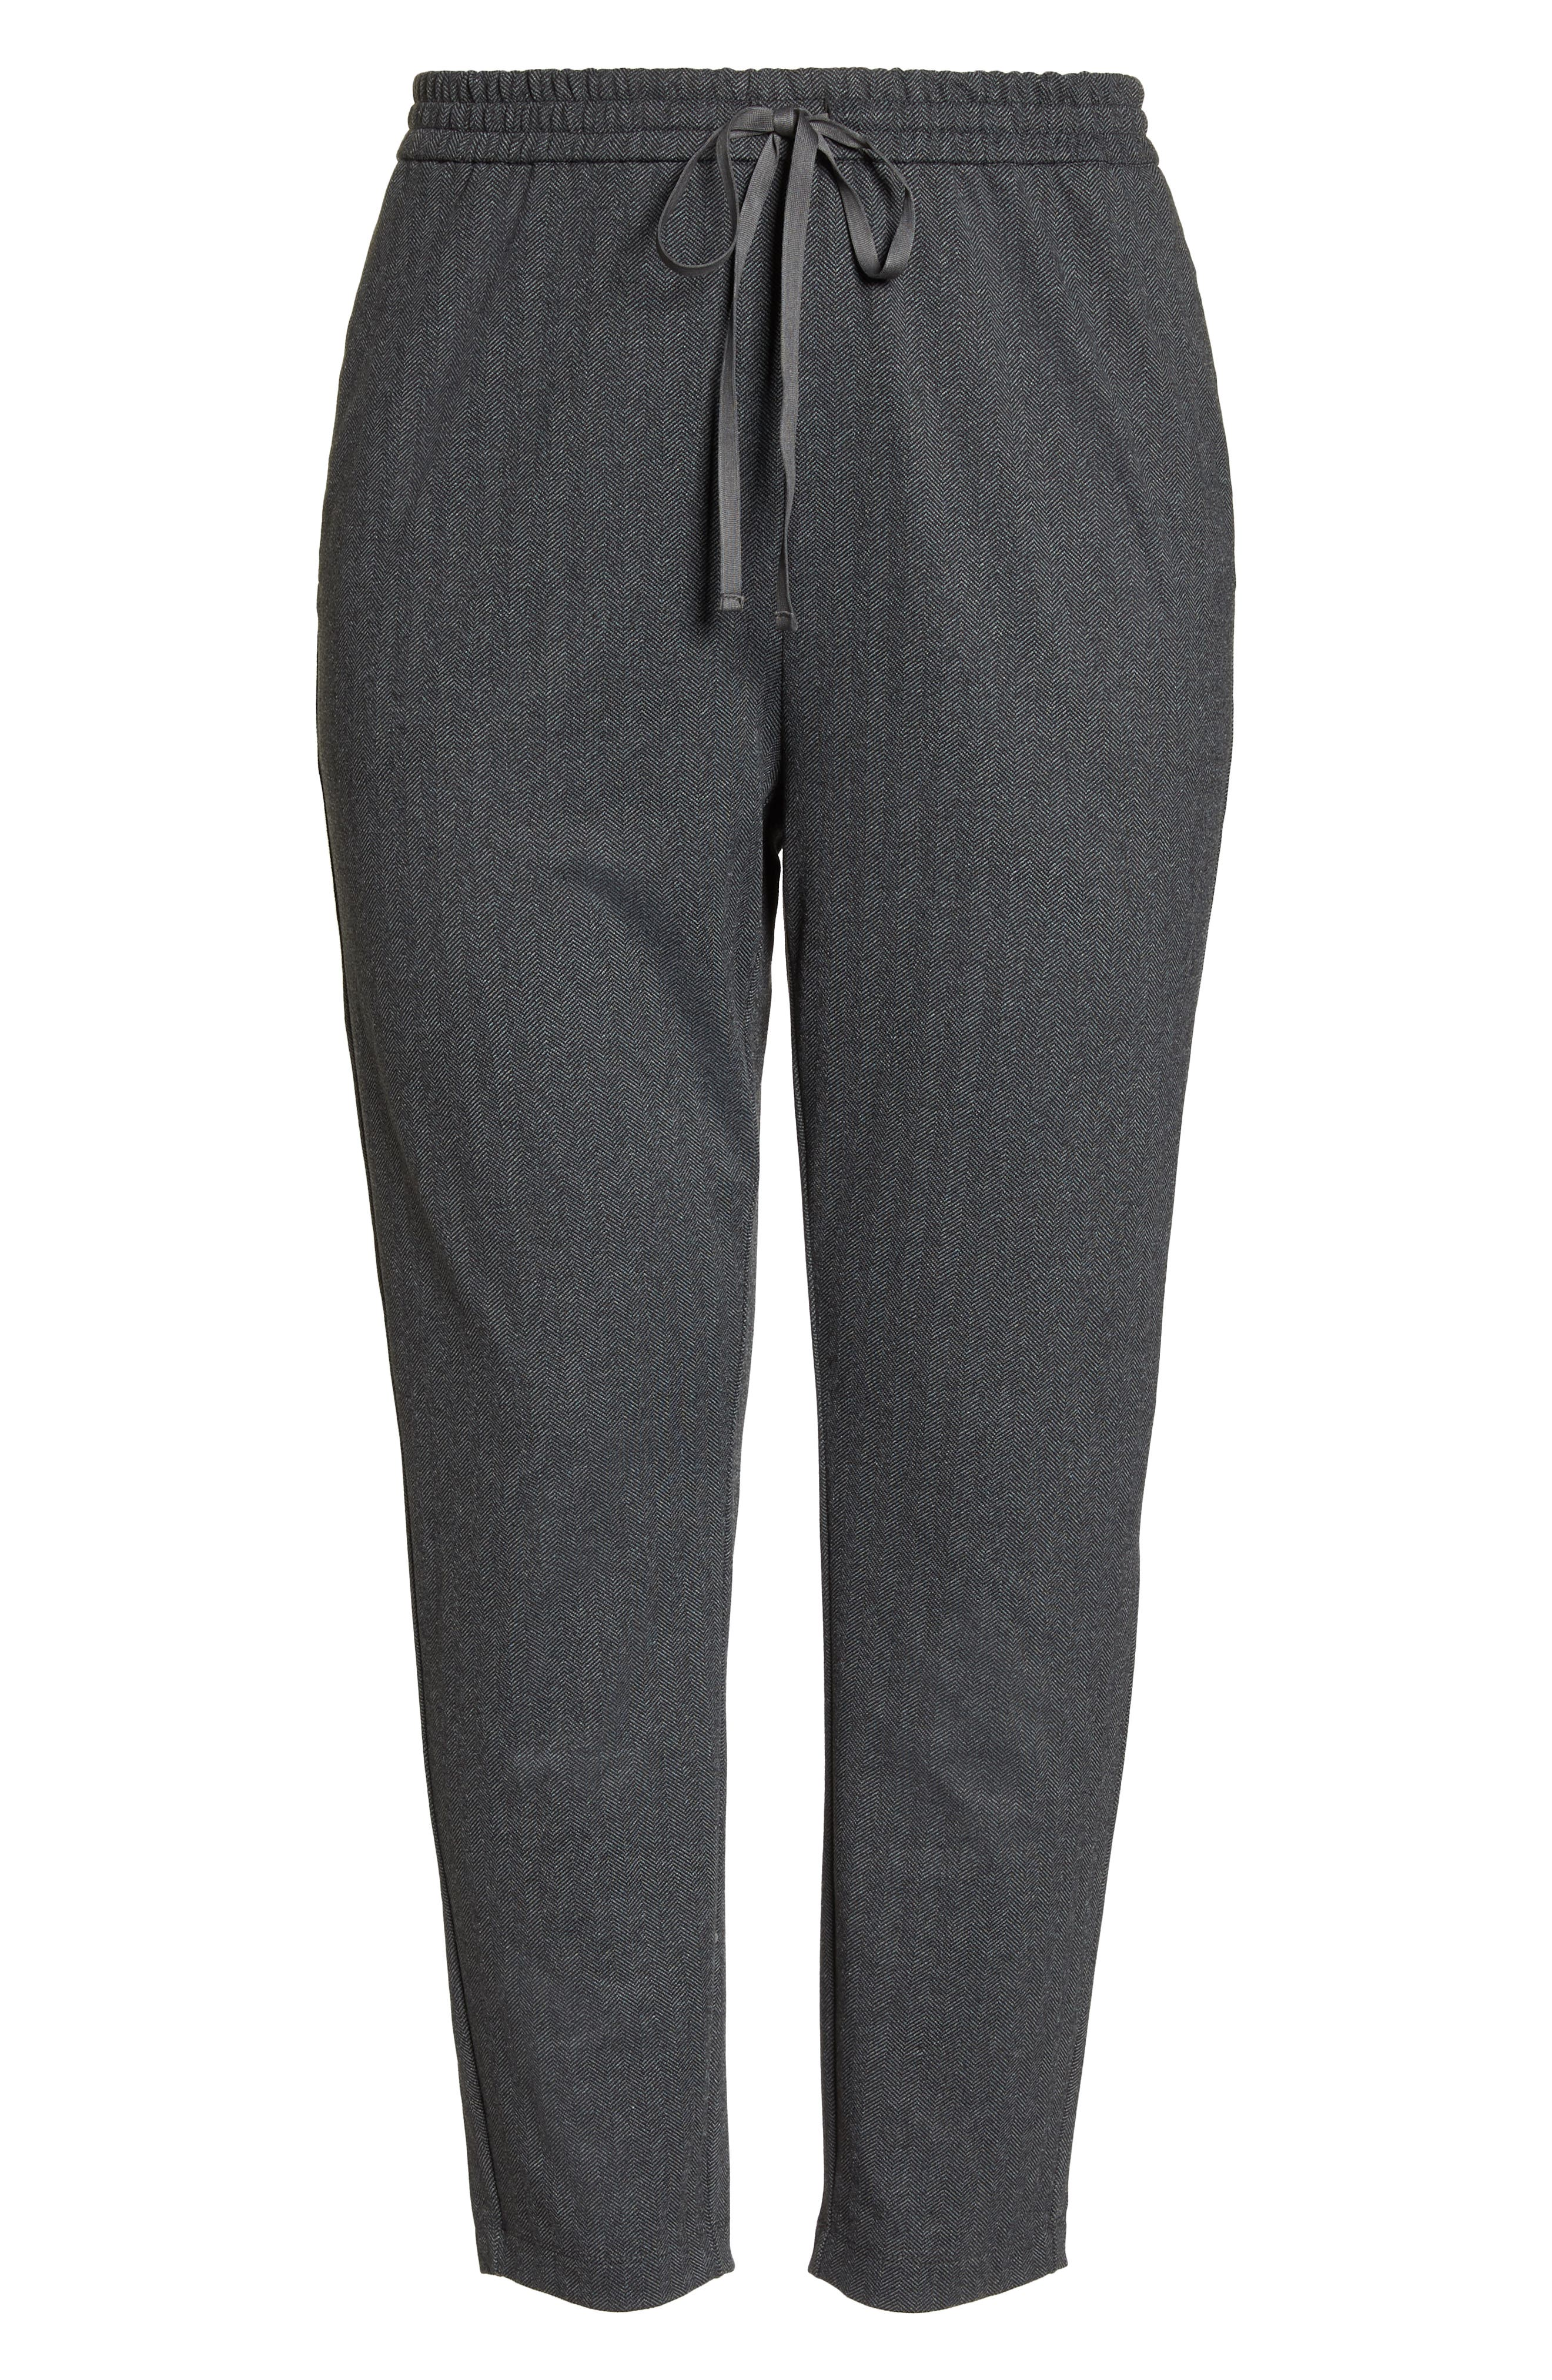 EILEEN FISHER,                             Slouchy Drawstring Pants,                             Alternate thumbnail 6, color,                             021